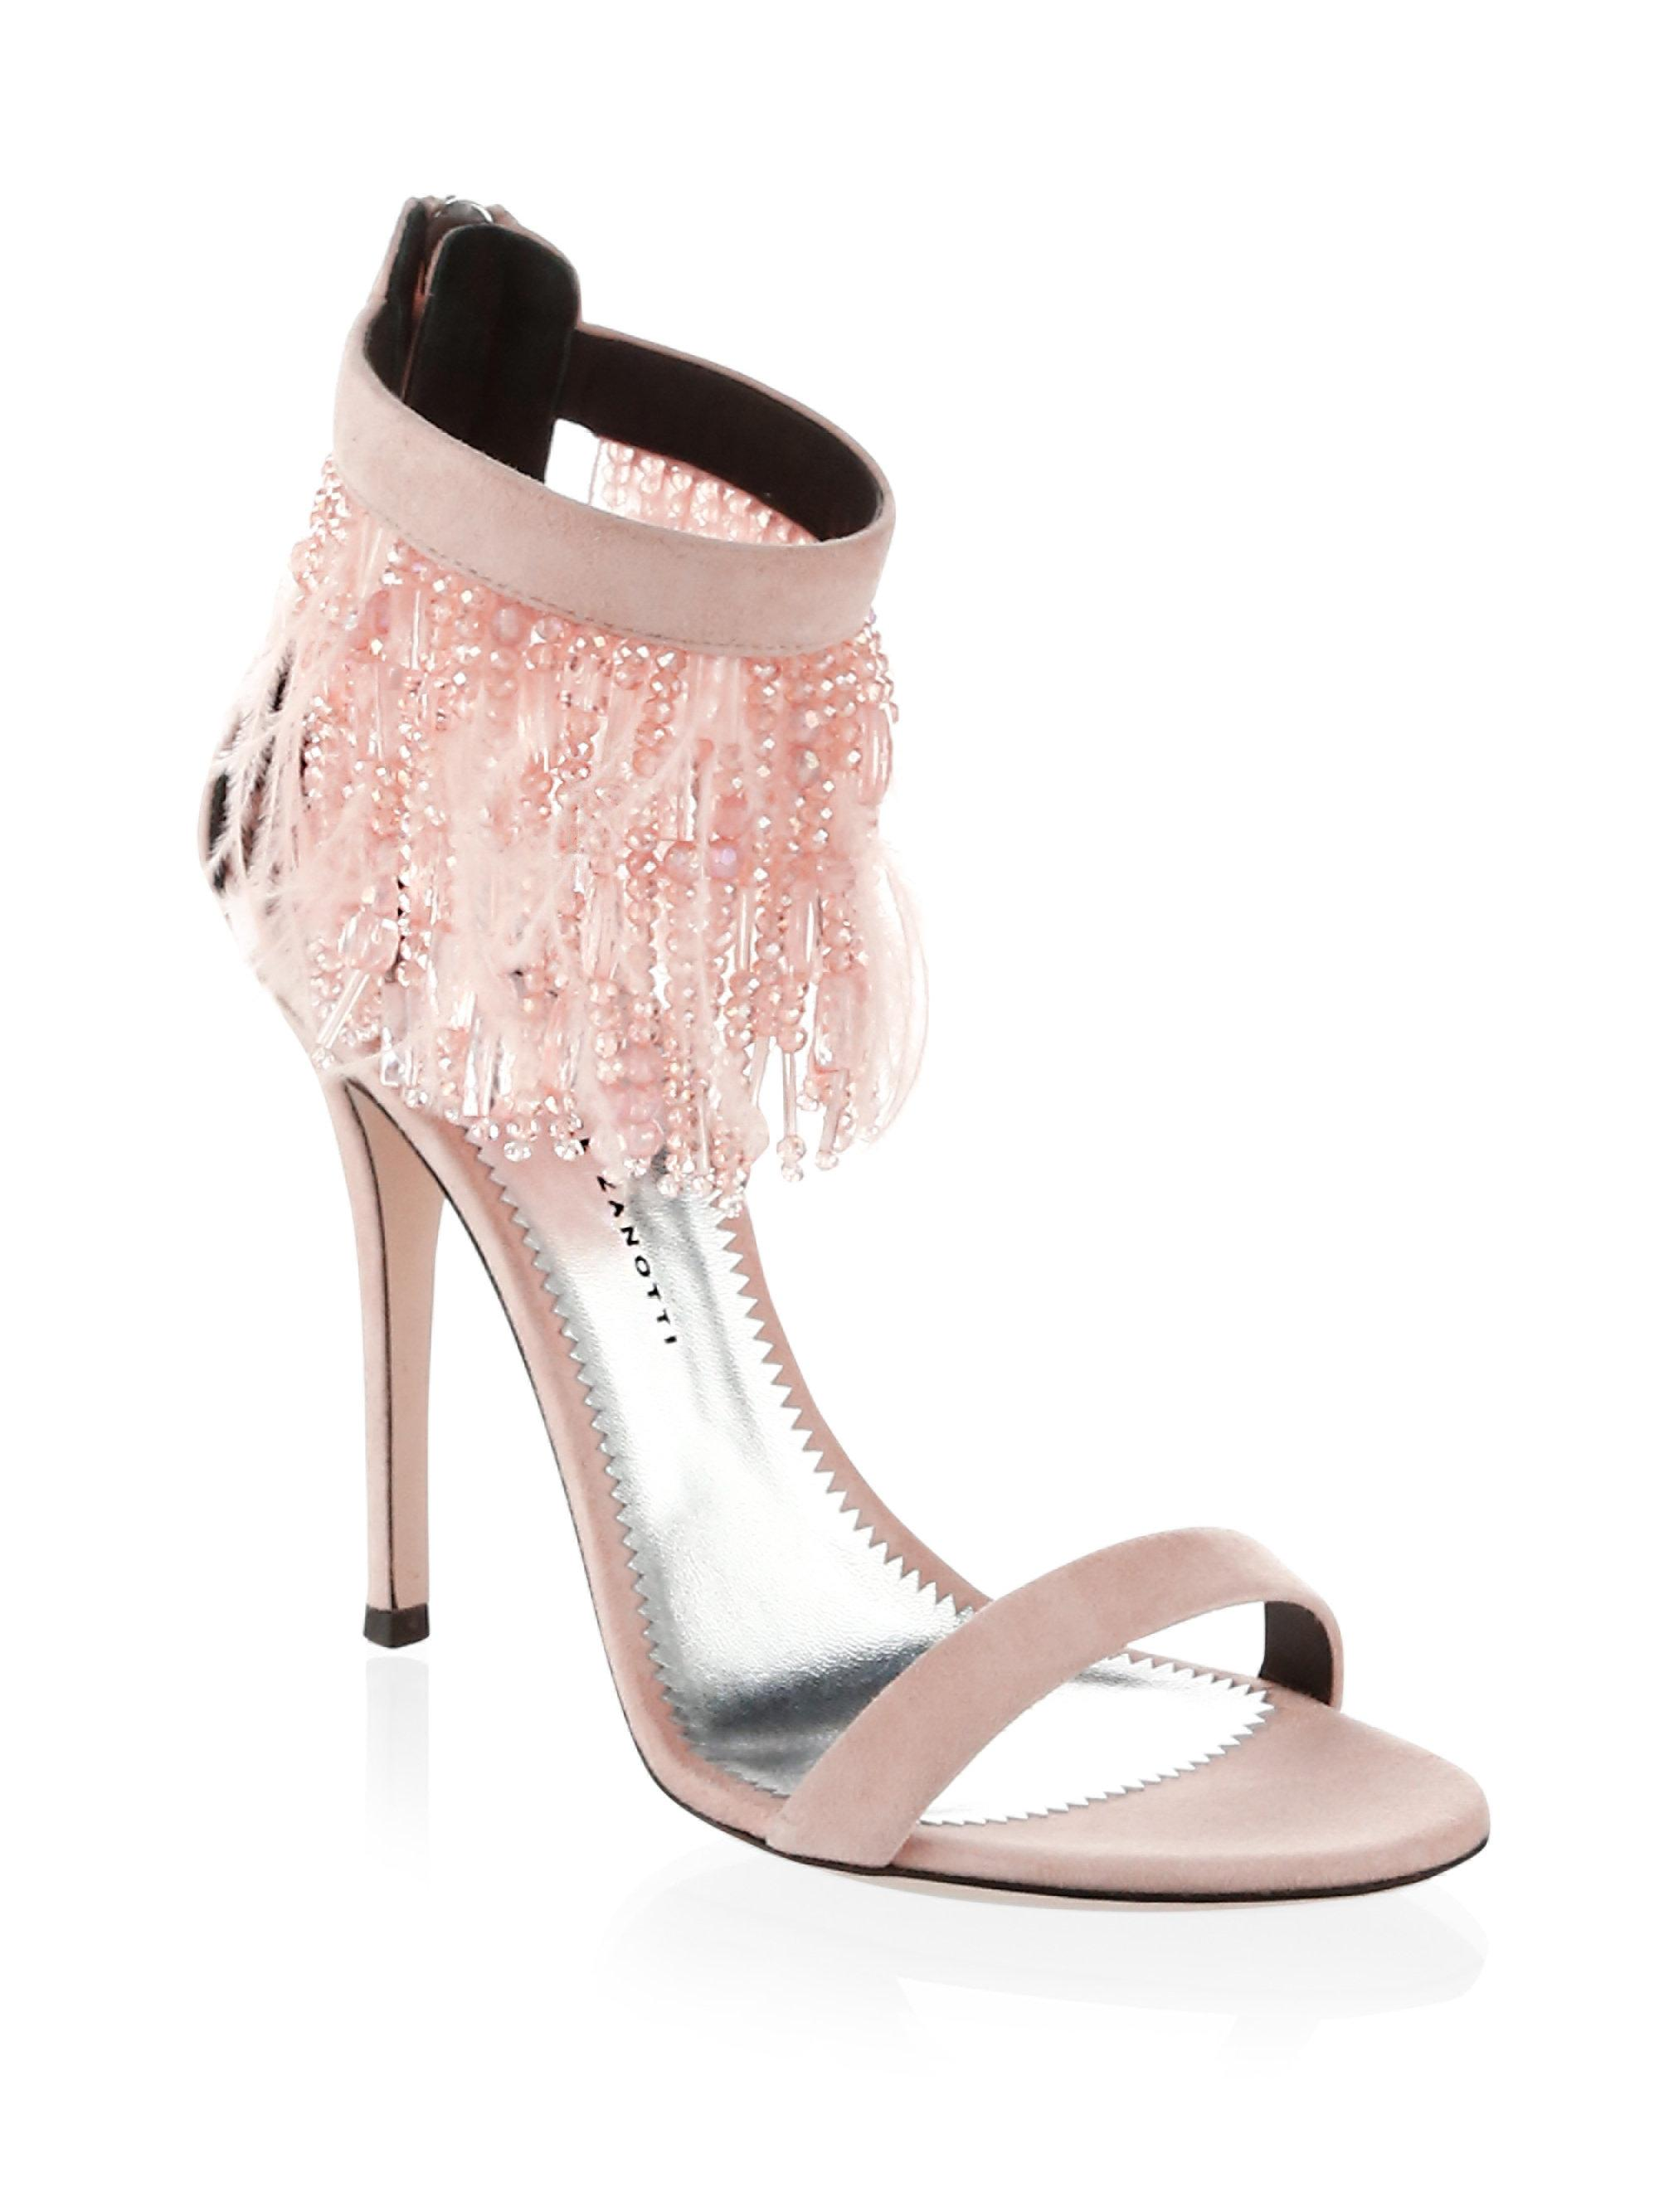 Giuseppe Zanotti Feather and bead trim sandals Cheap 2018 New zdhQmn9i4Q